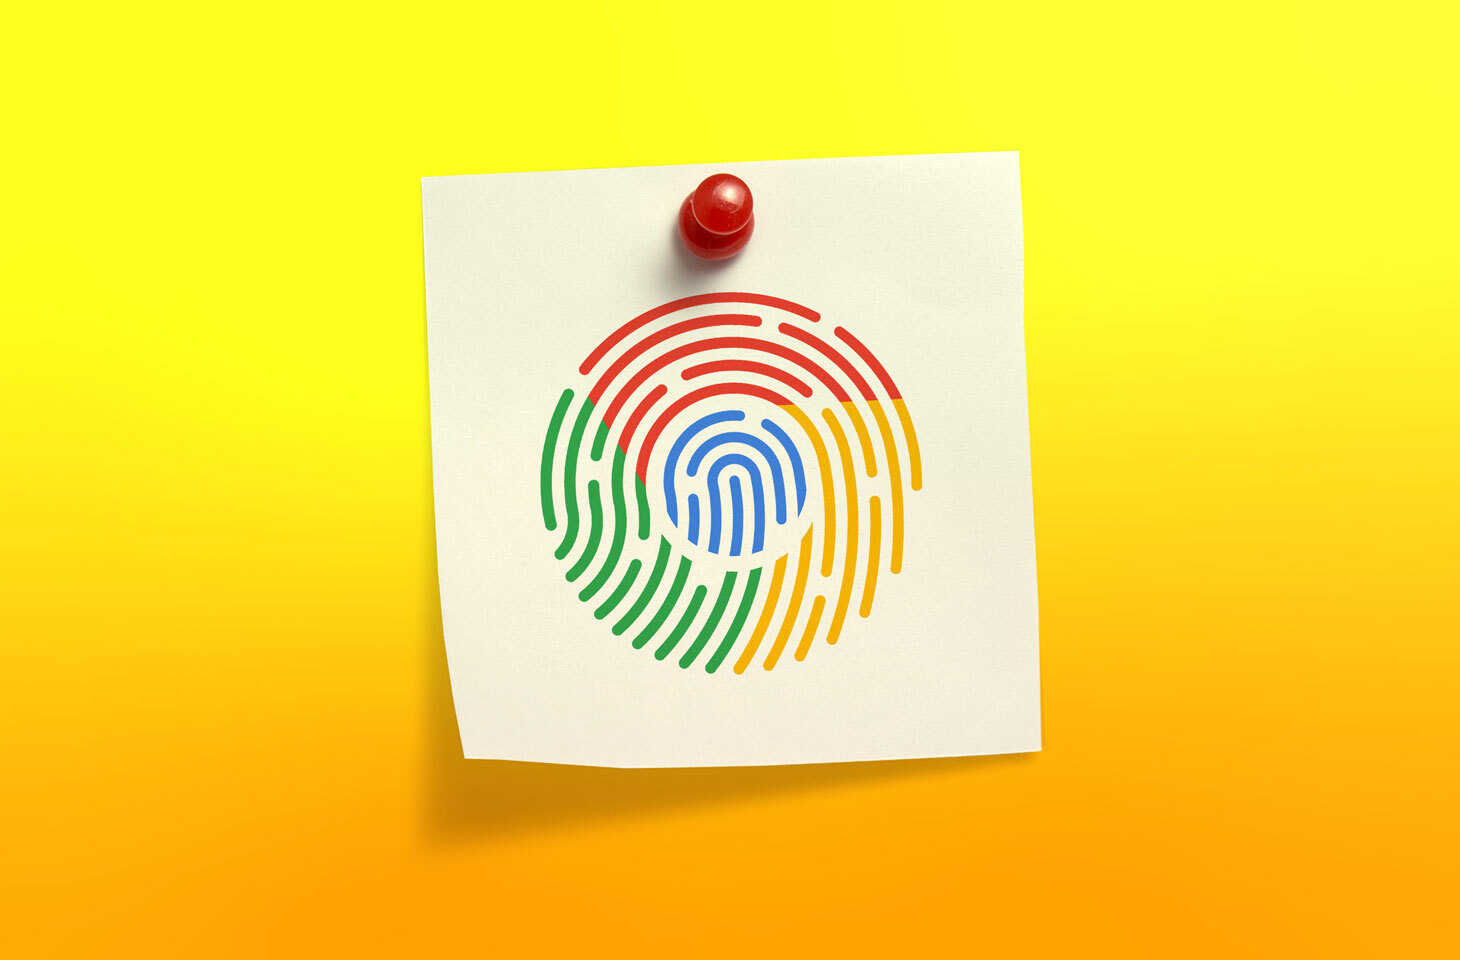 How to tell if a website is taking your (browser) fingerprints